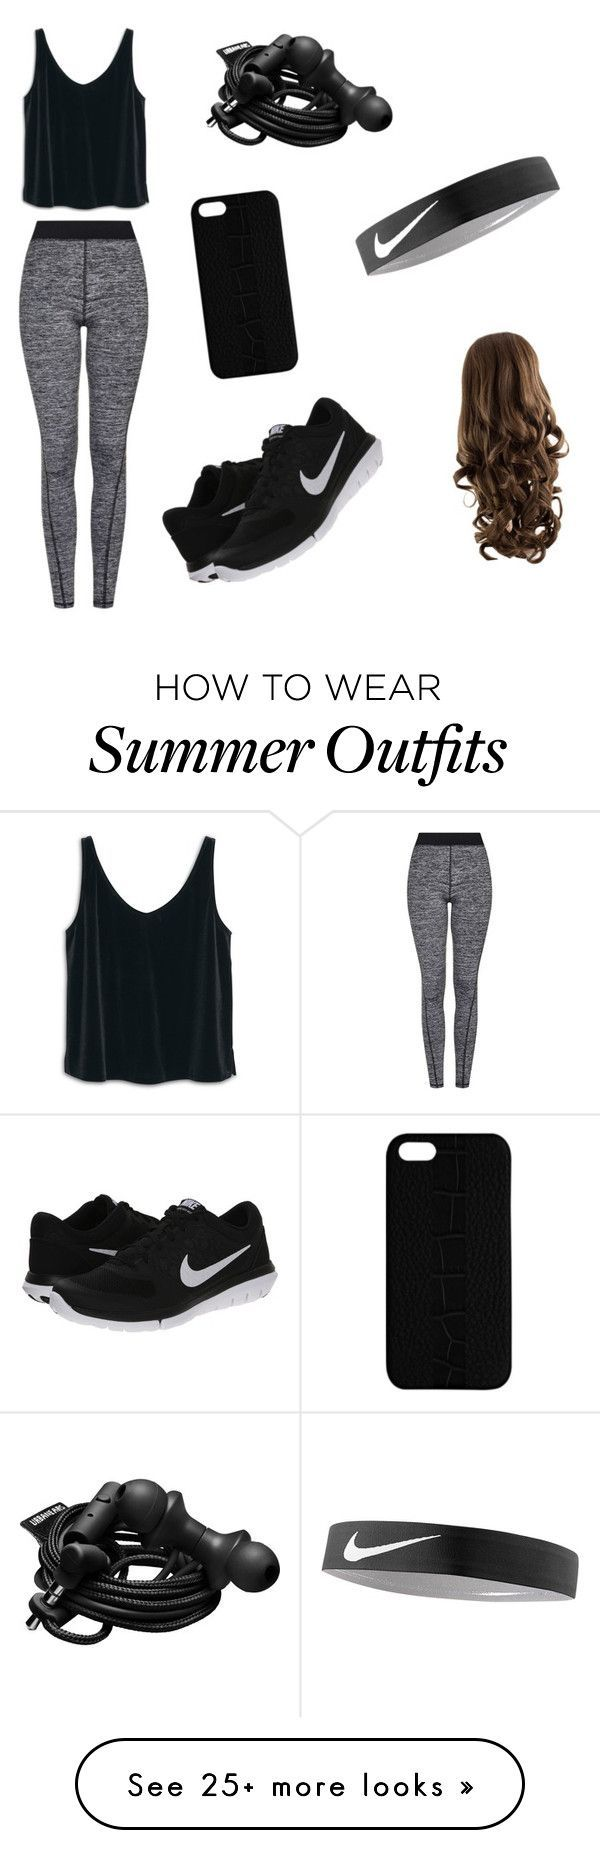 """Summer workout outfit"" by minnie-2012 on Polyvore featuring moda, Topshop, MANGO, NIKE, Maison Takuya y Urbanears"